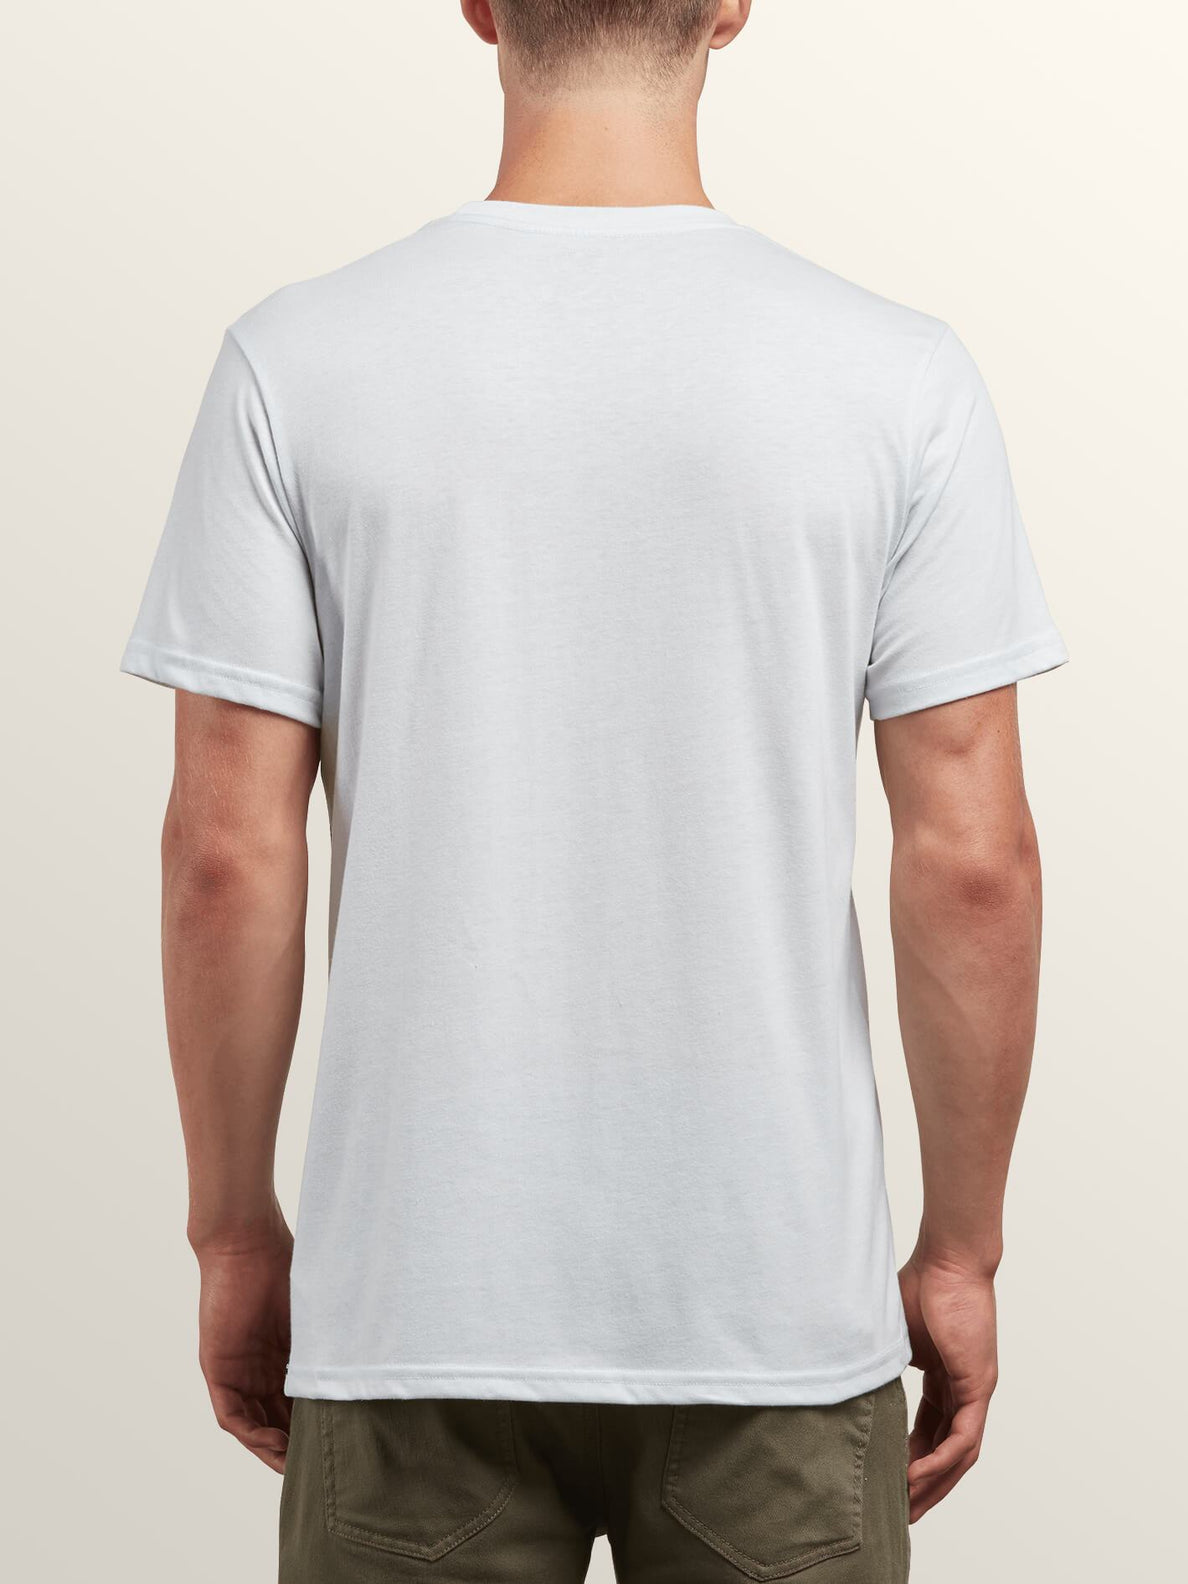 Sea-weed Short Sleeve Pocket Tee In White, Back View